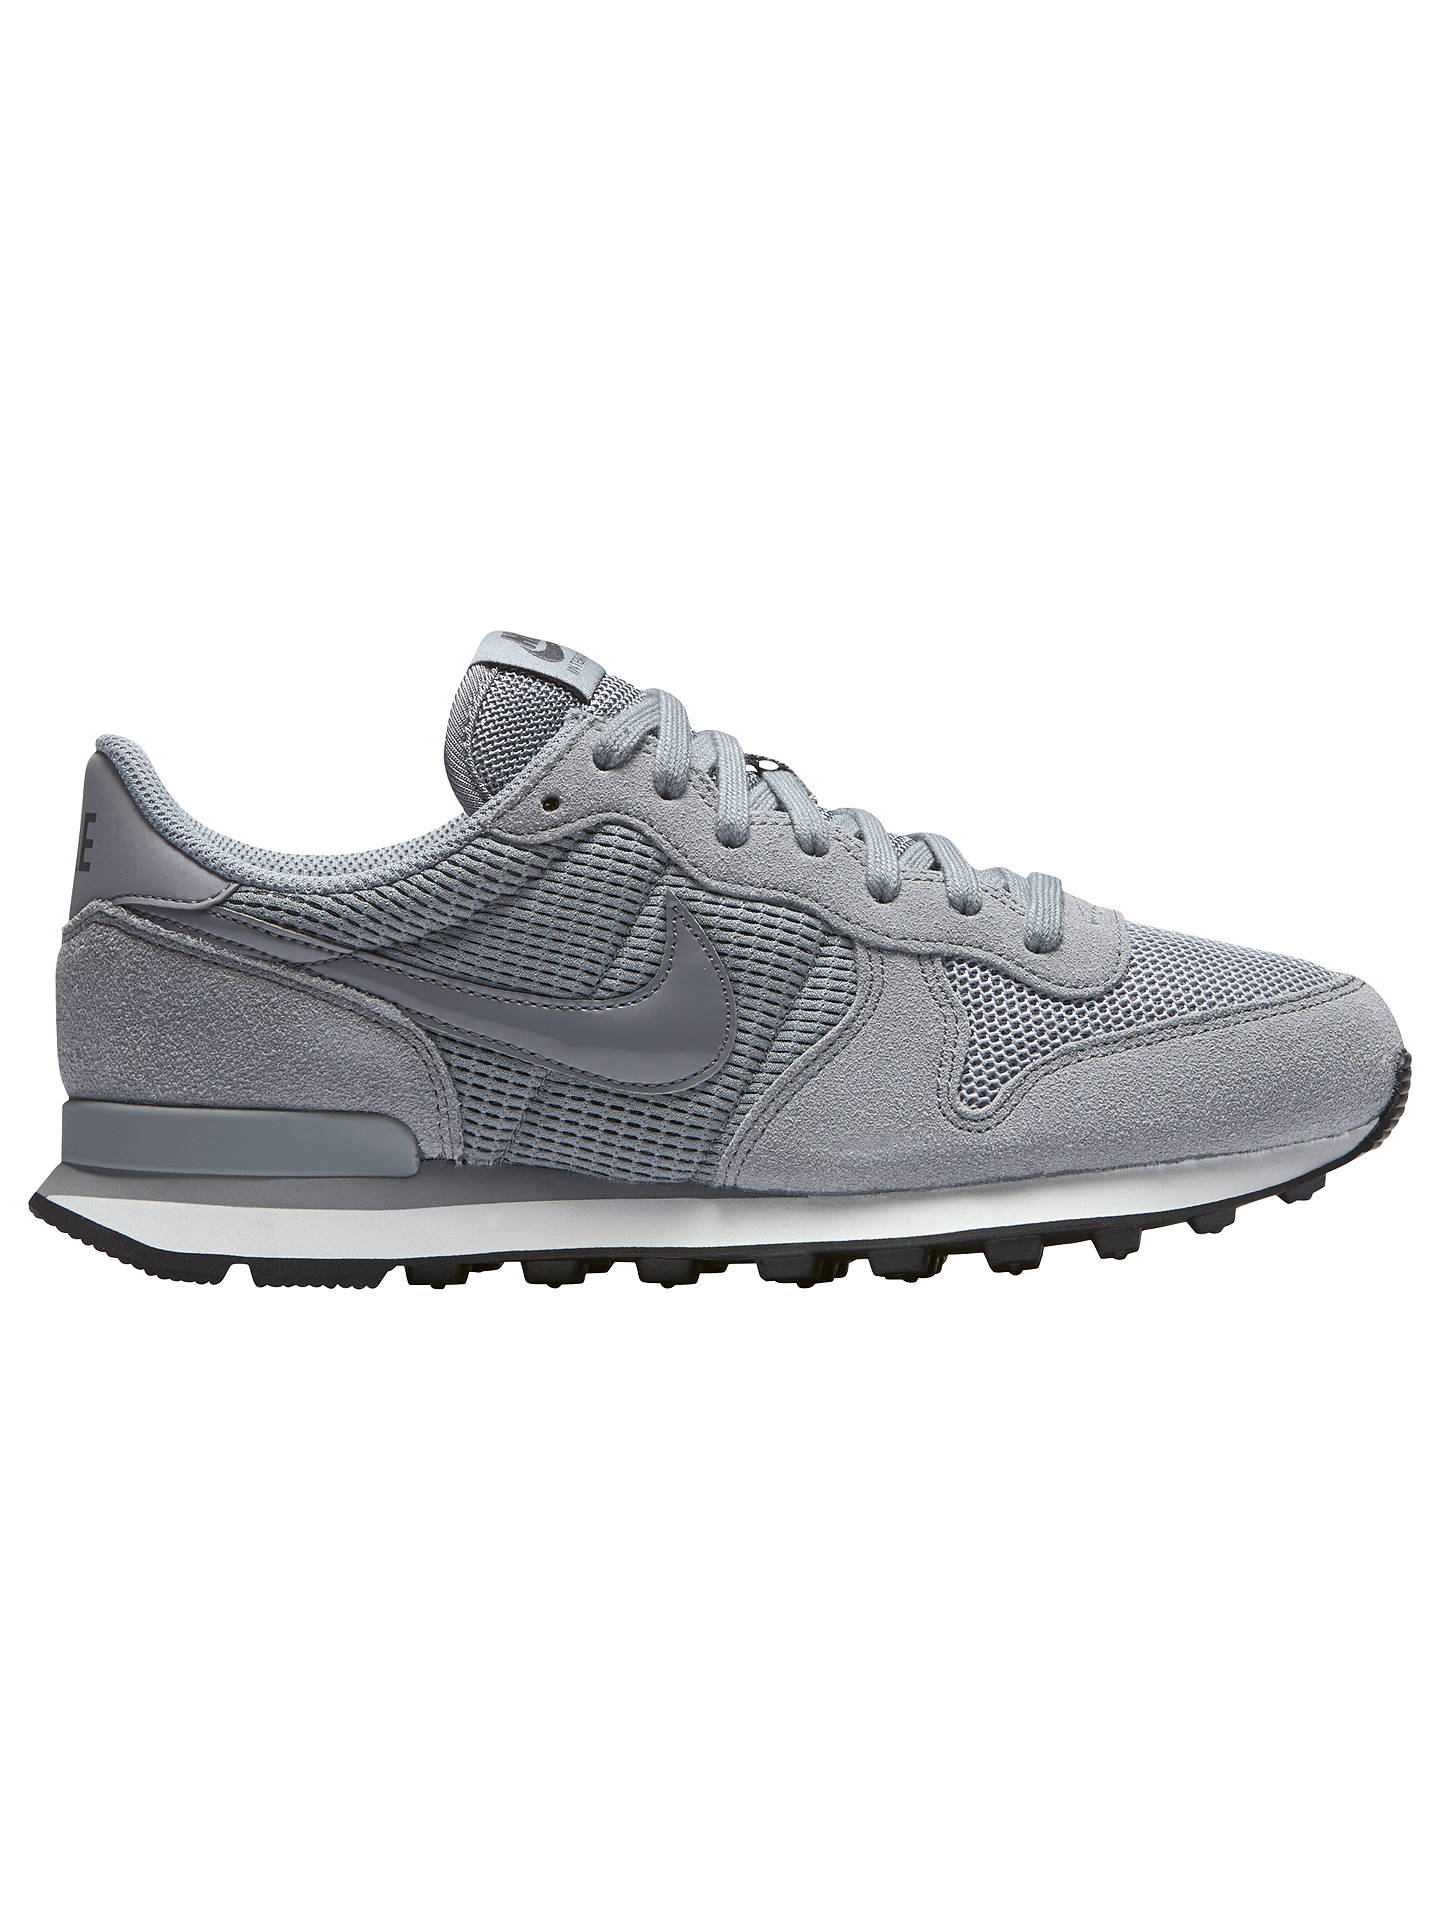 huge selection of c14d8 414a3 Buy Nike Internationalist Women s Trainers, Stealth Dark Grey Summit White,  4 Online at ...